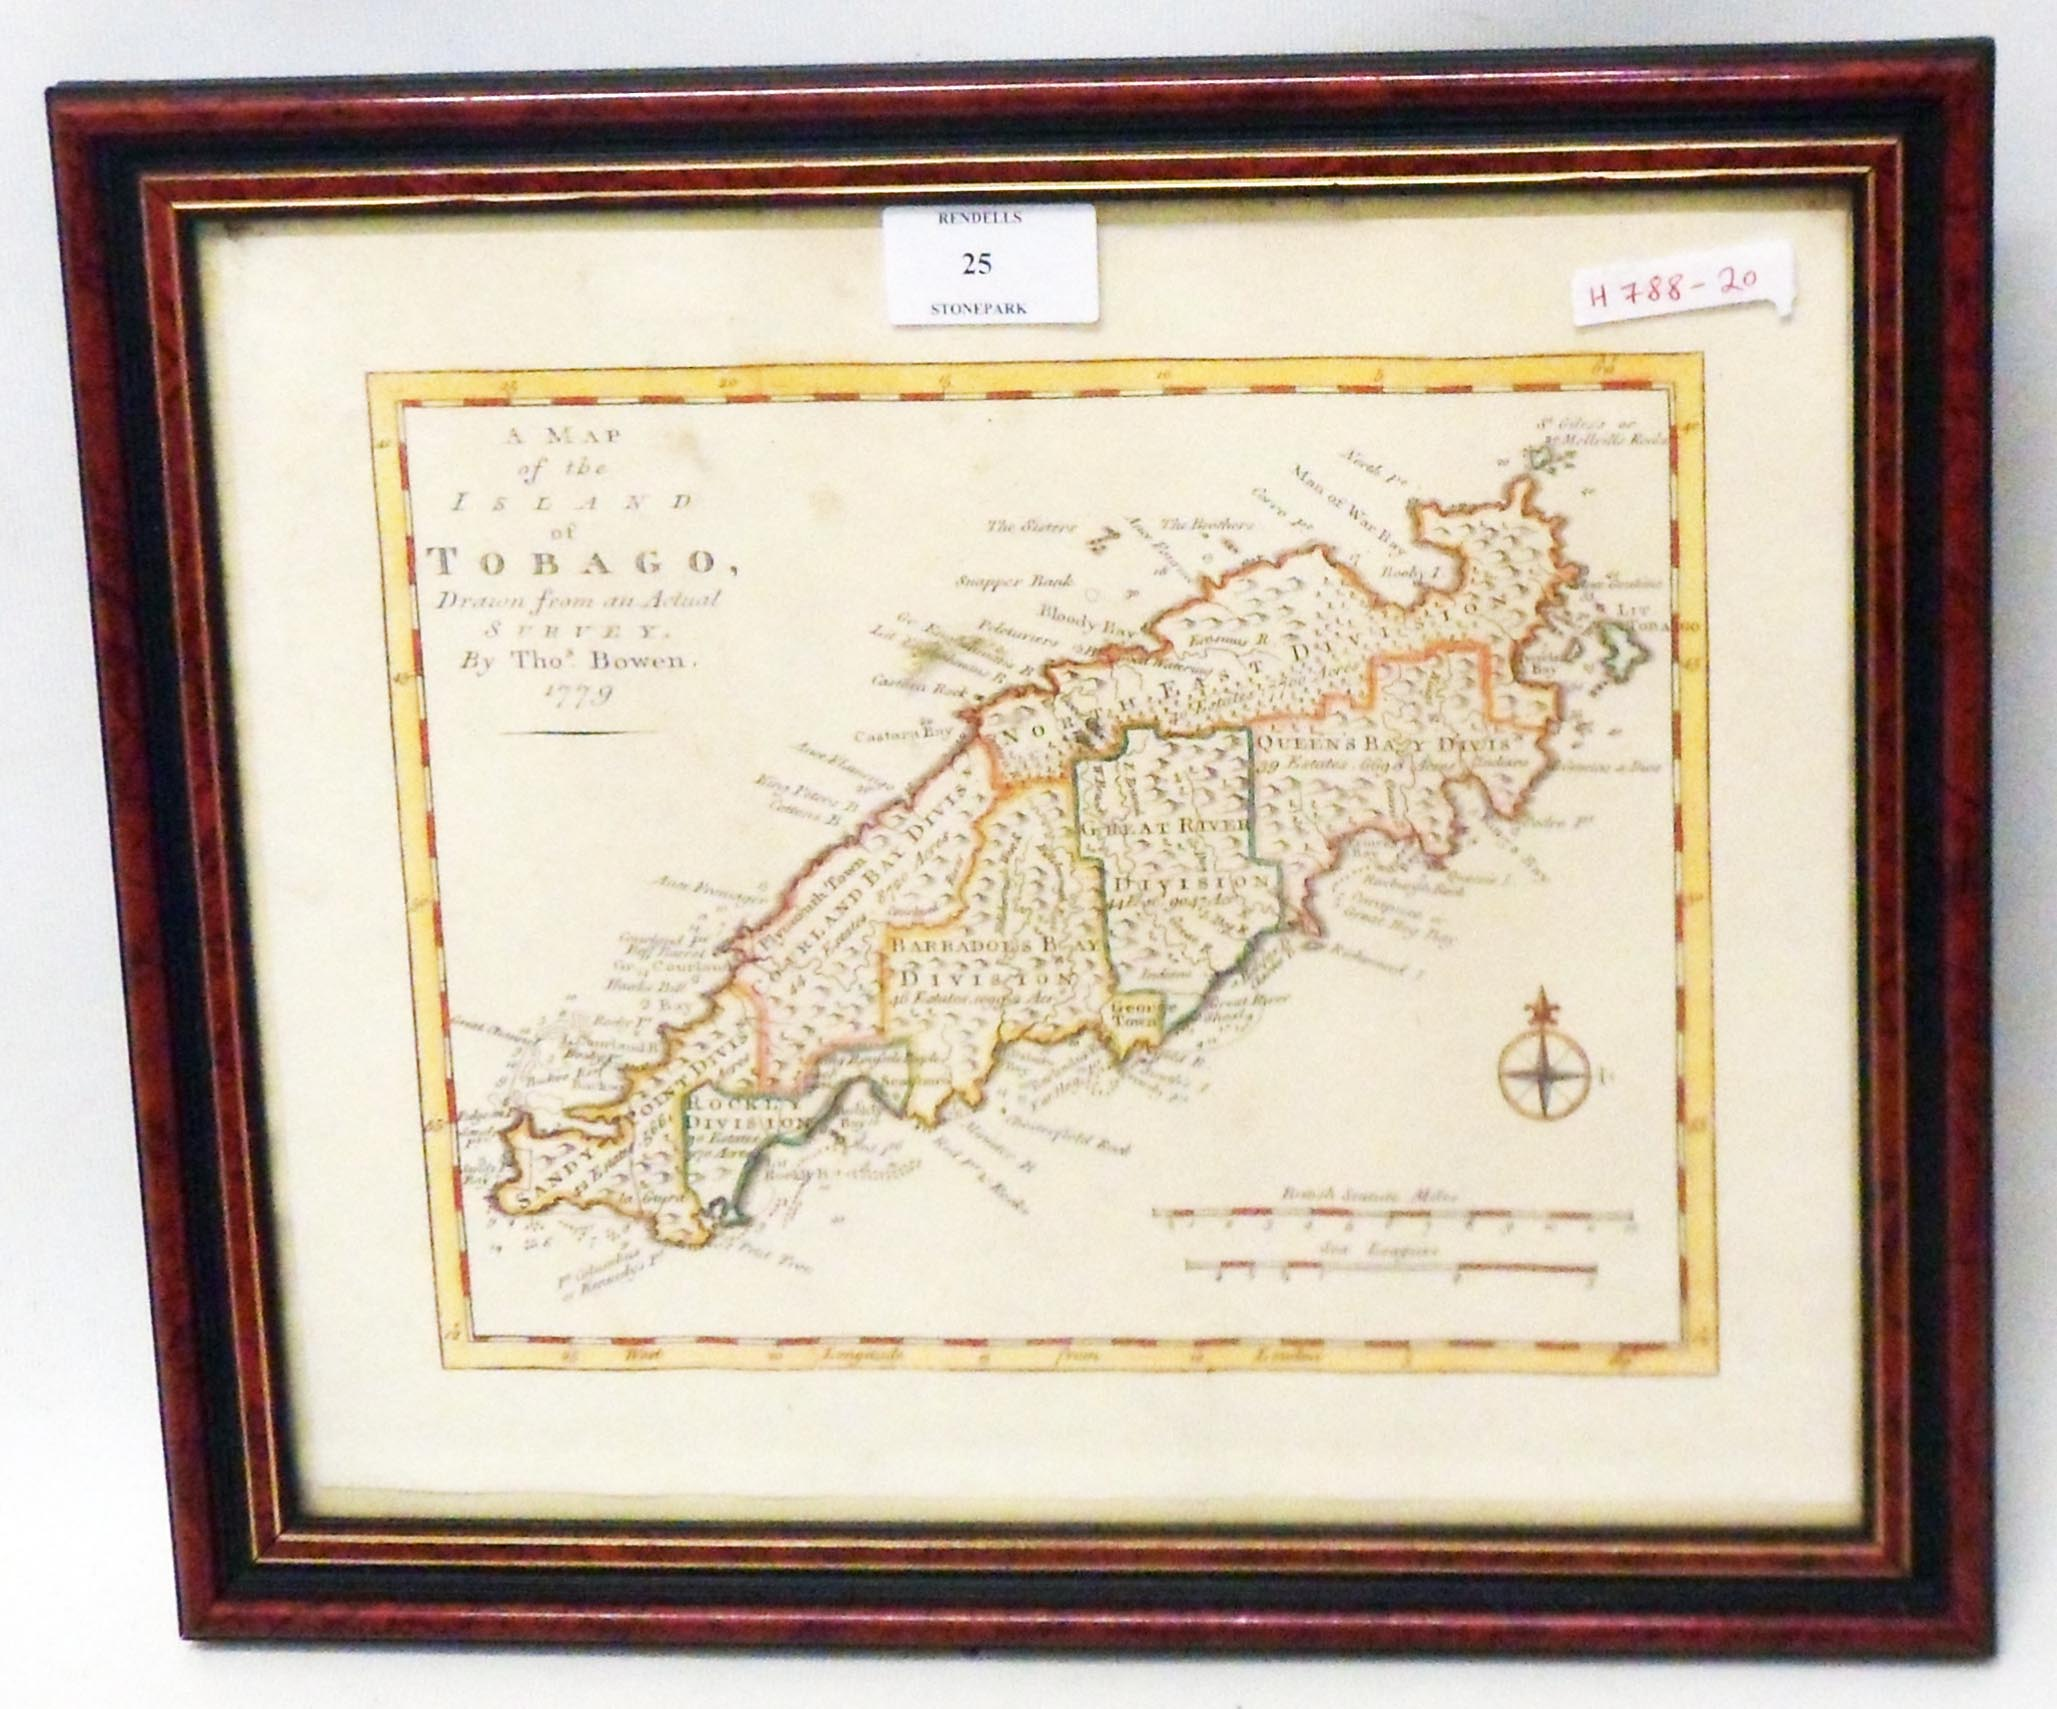 A modern framed reproduction map print of the island of Tobago, after T. Bowen